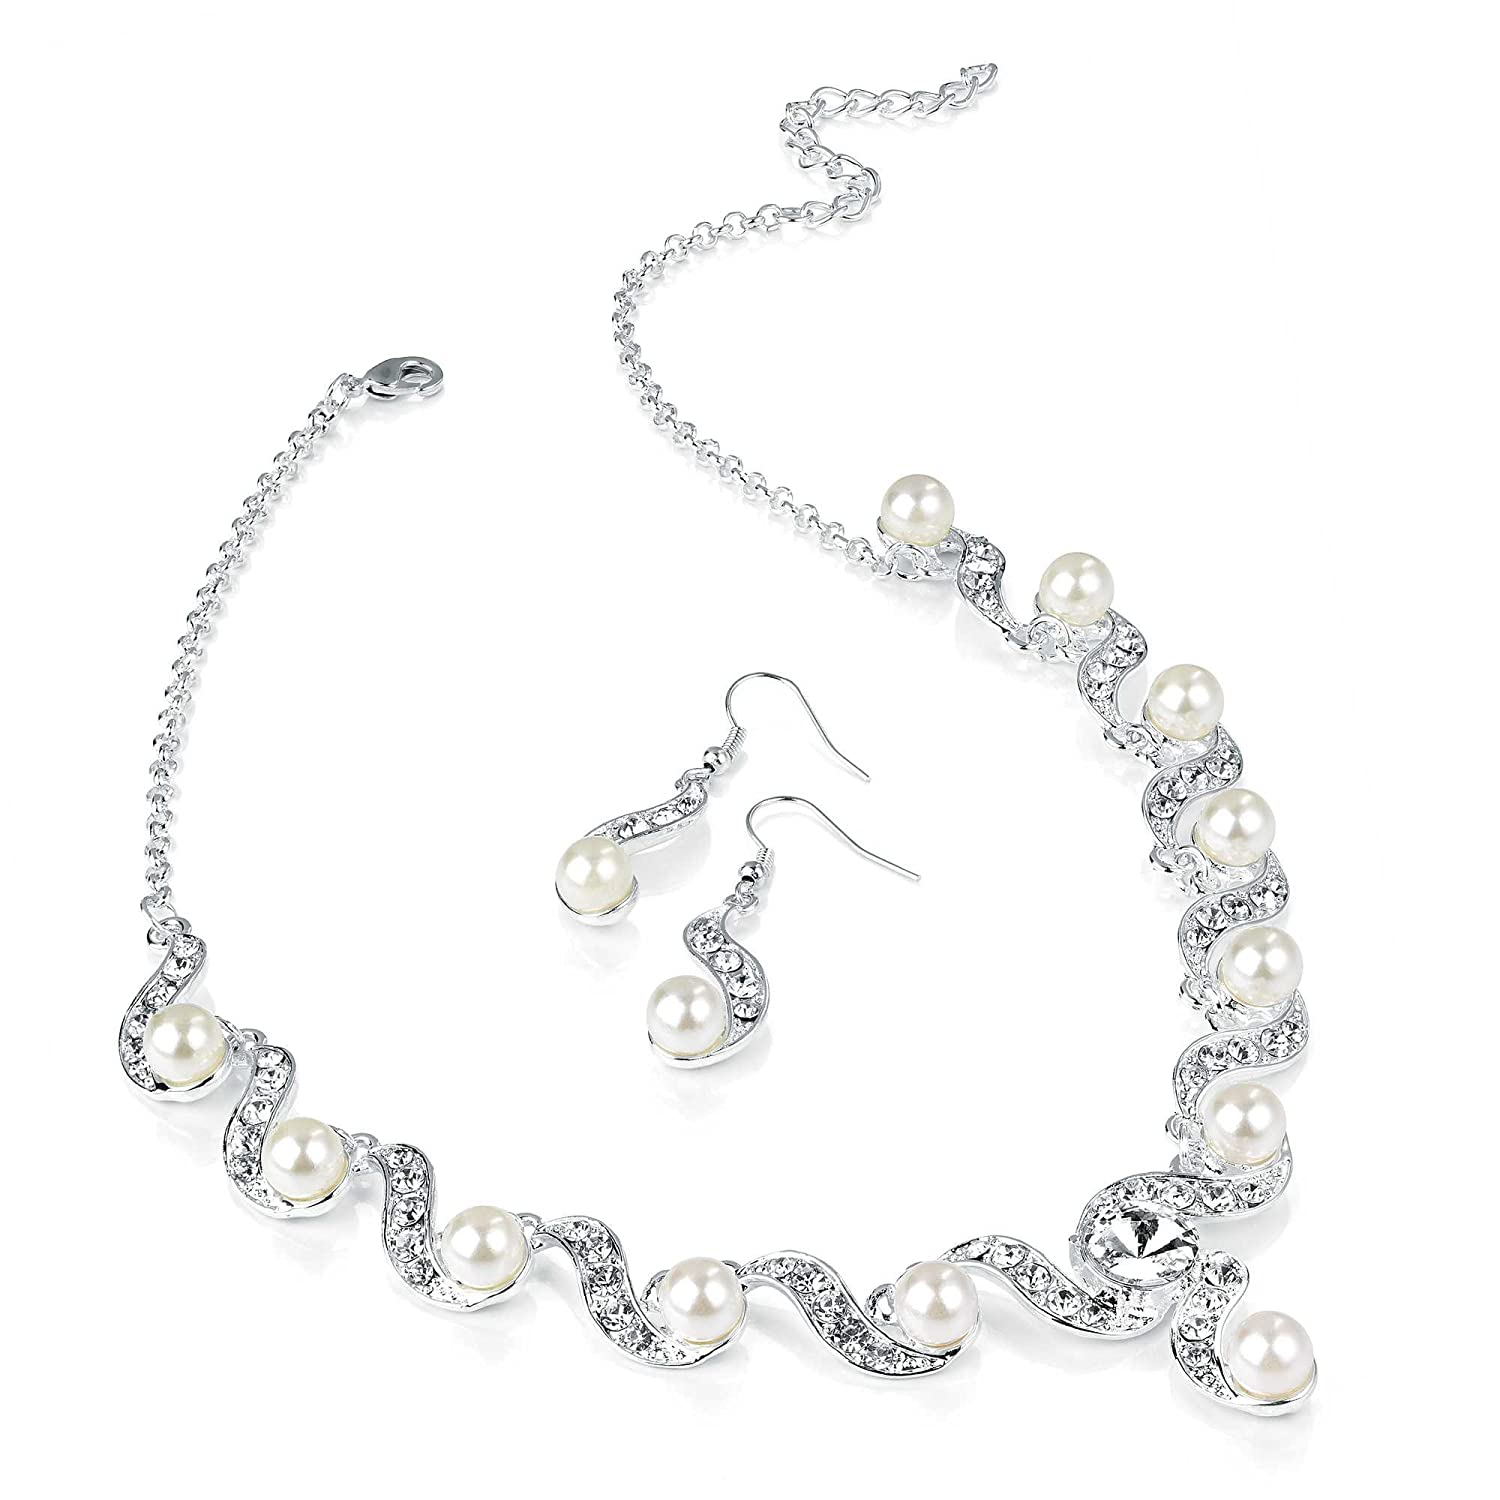 Shiny Silver and Pearl Diamante Necklace and Earring Set Costume Fashion Jewellery Prestina Peach Jewellery